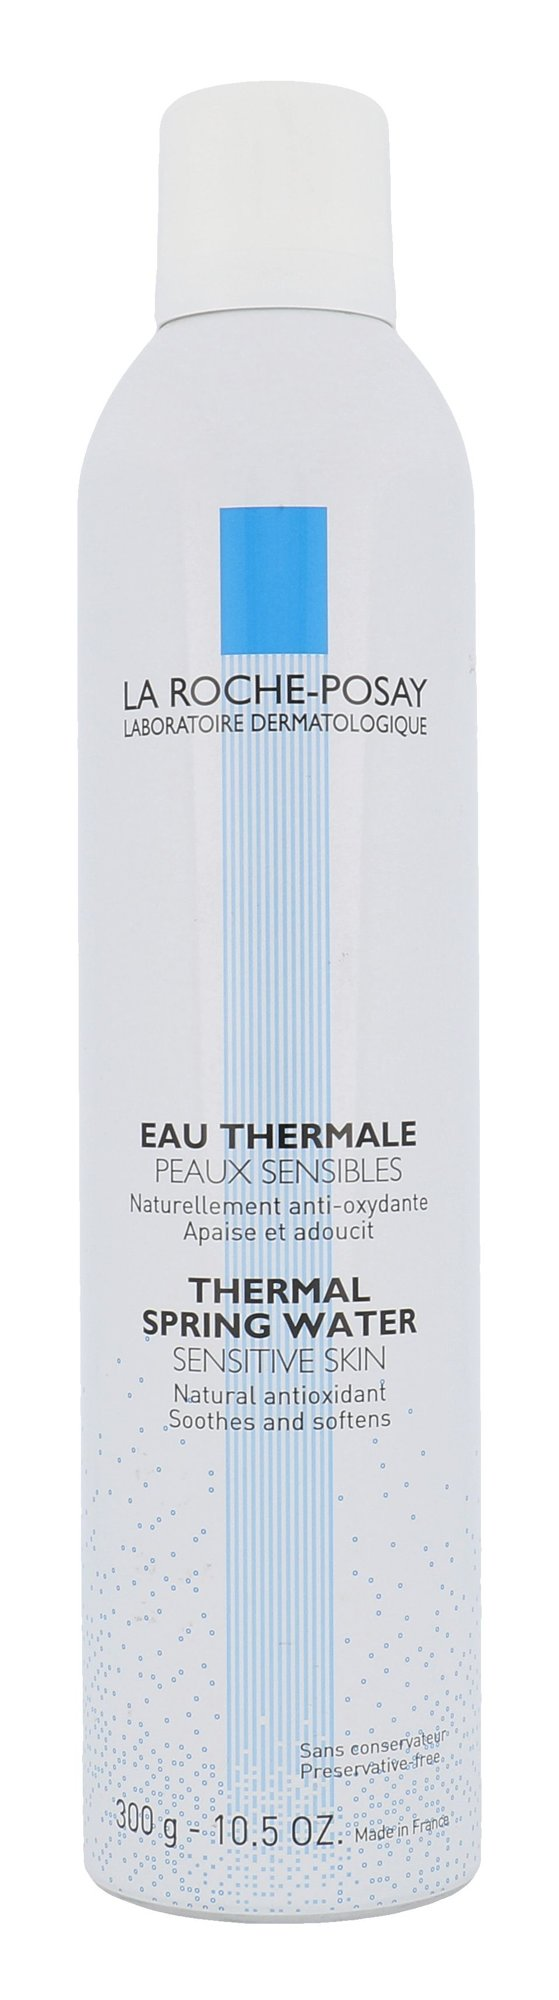 La Roche-Posay Thermal Spring Water Cosmetic 300ml